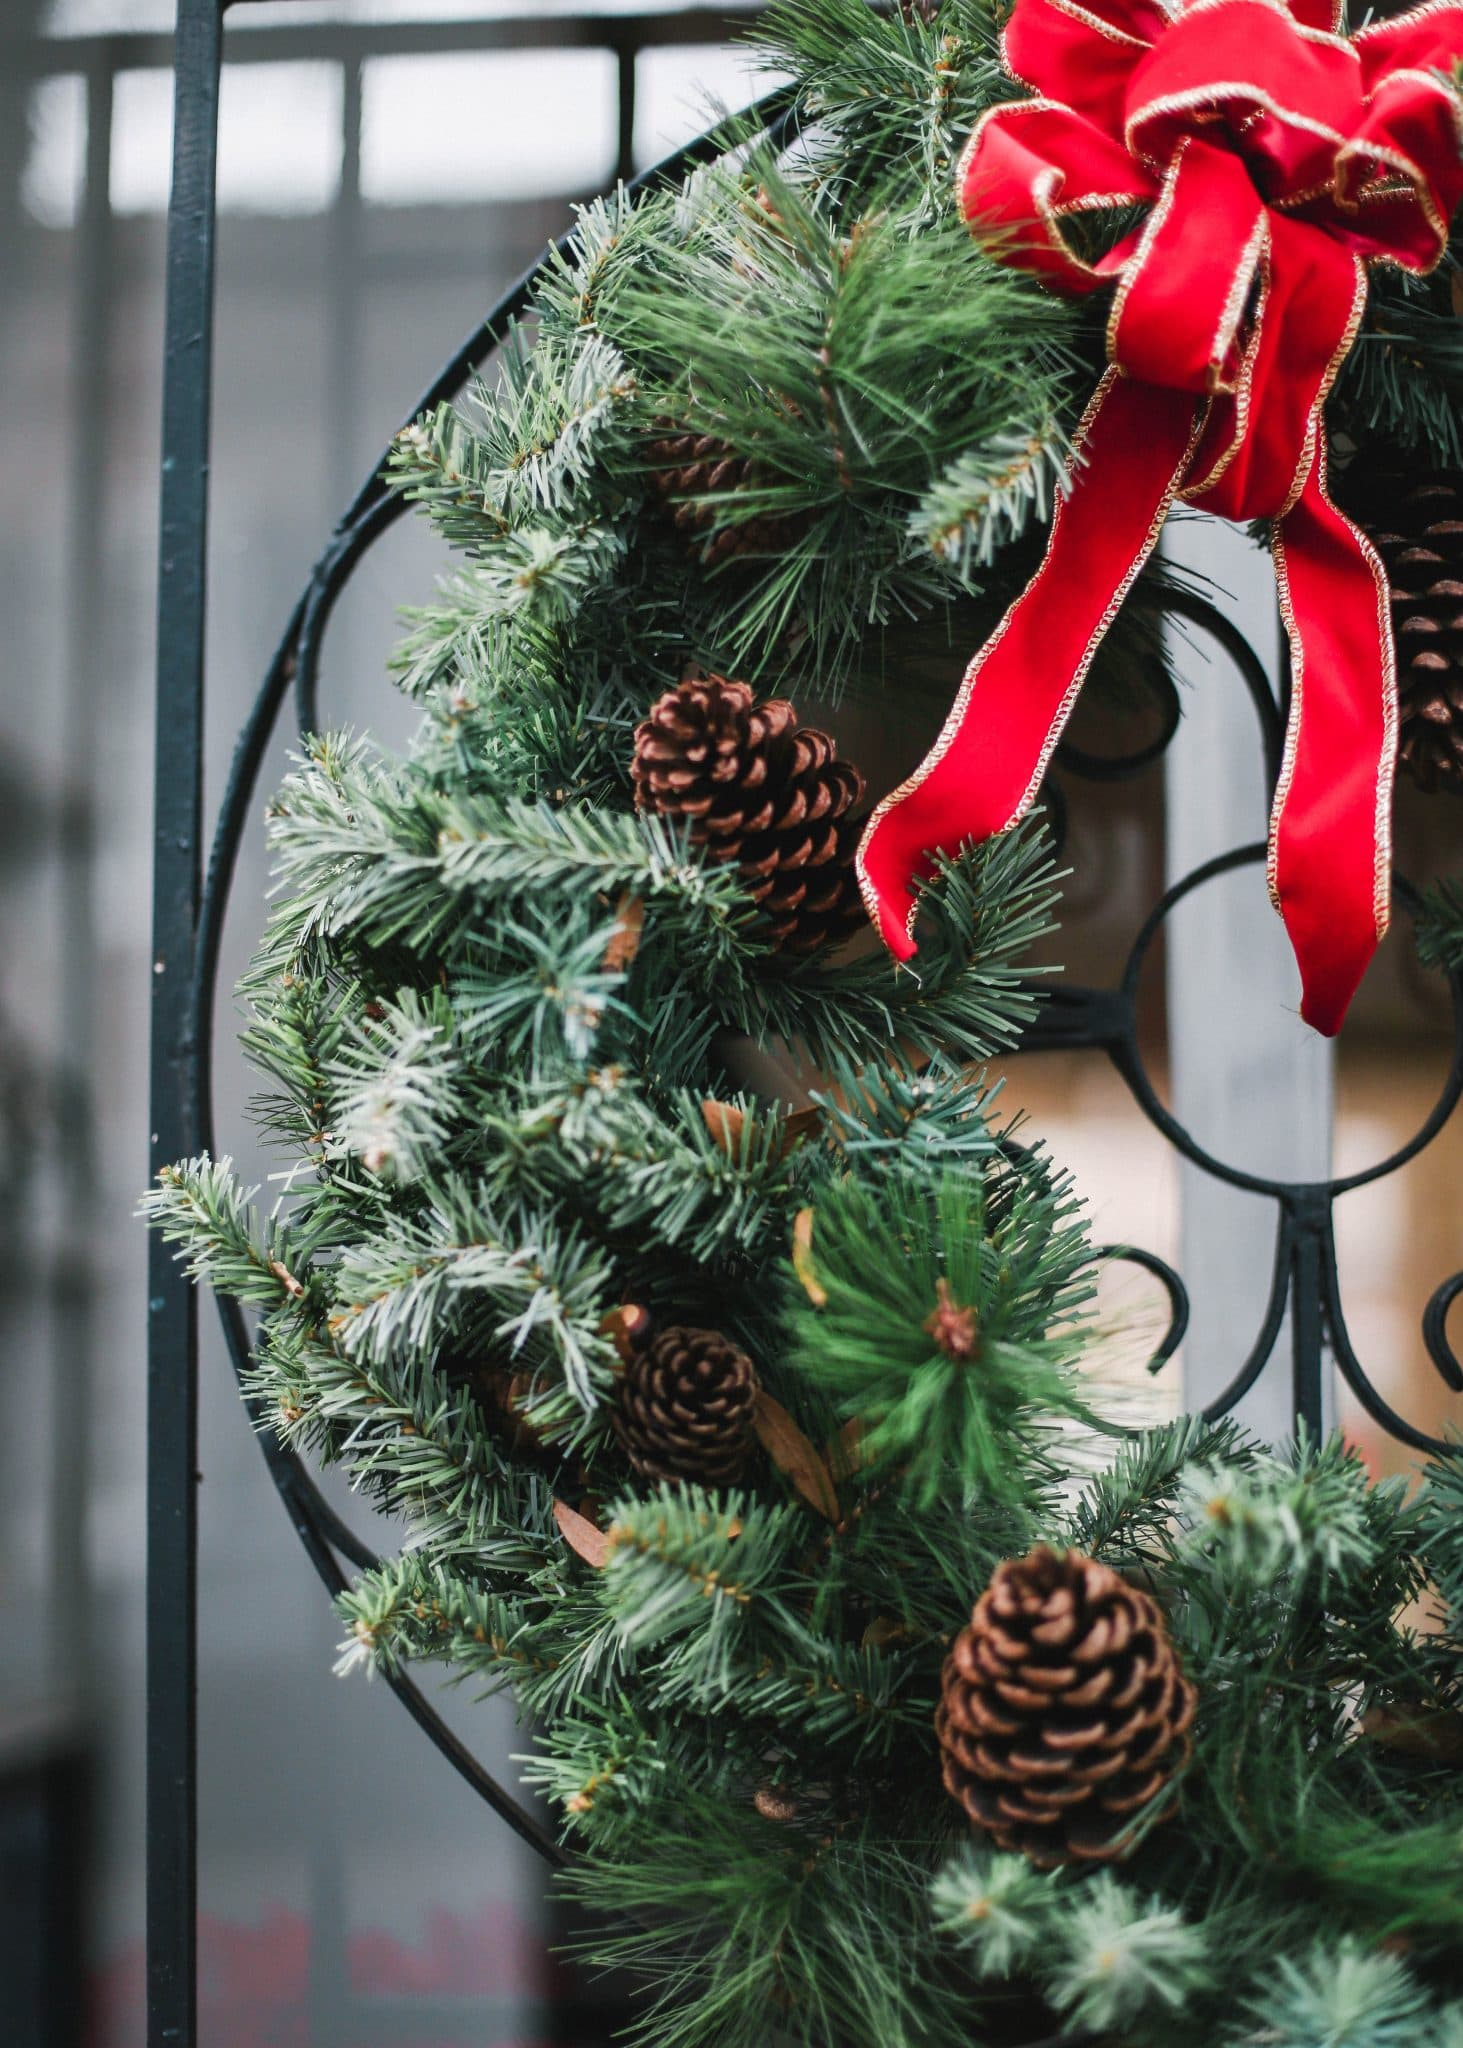 downtown charleston holiday winter decorations, pretty in the pines, travel blog, lifestyle